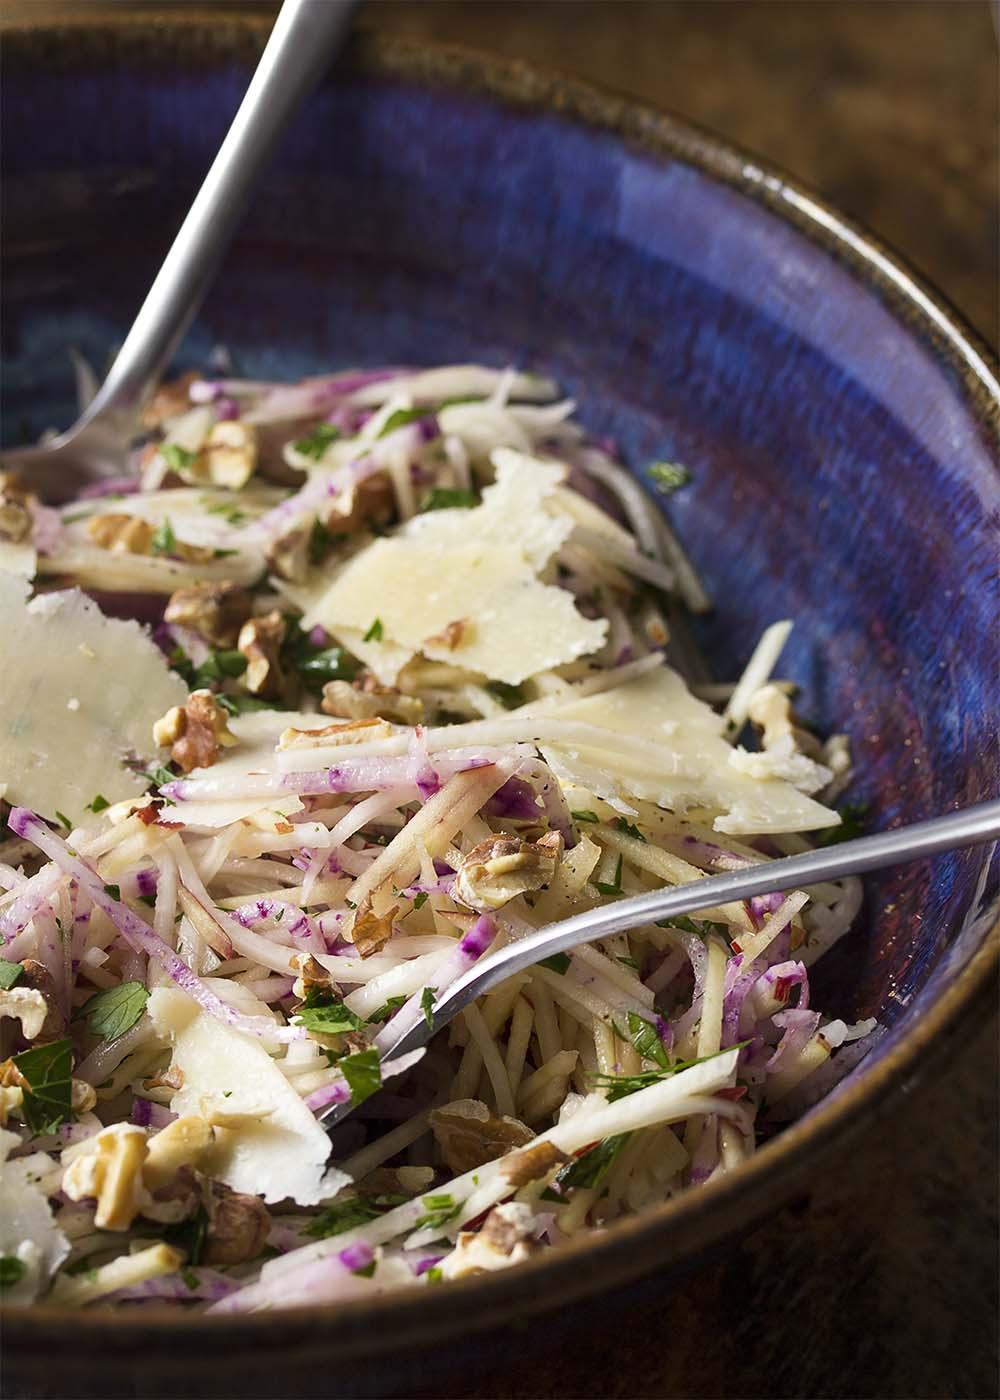 A serving bowl filled with kohlrabi apple and radish slaw, topped with parmesan shavings and walnuts.